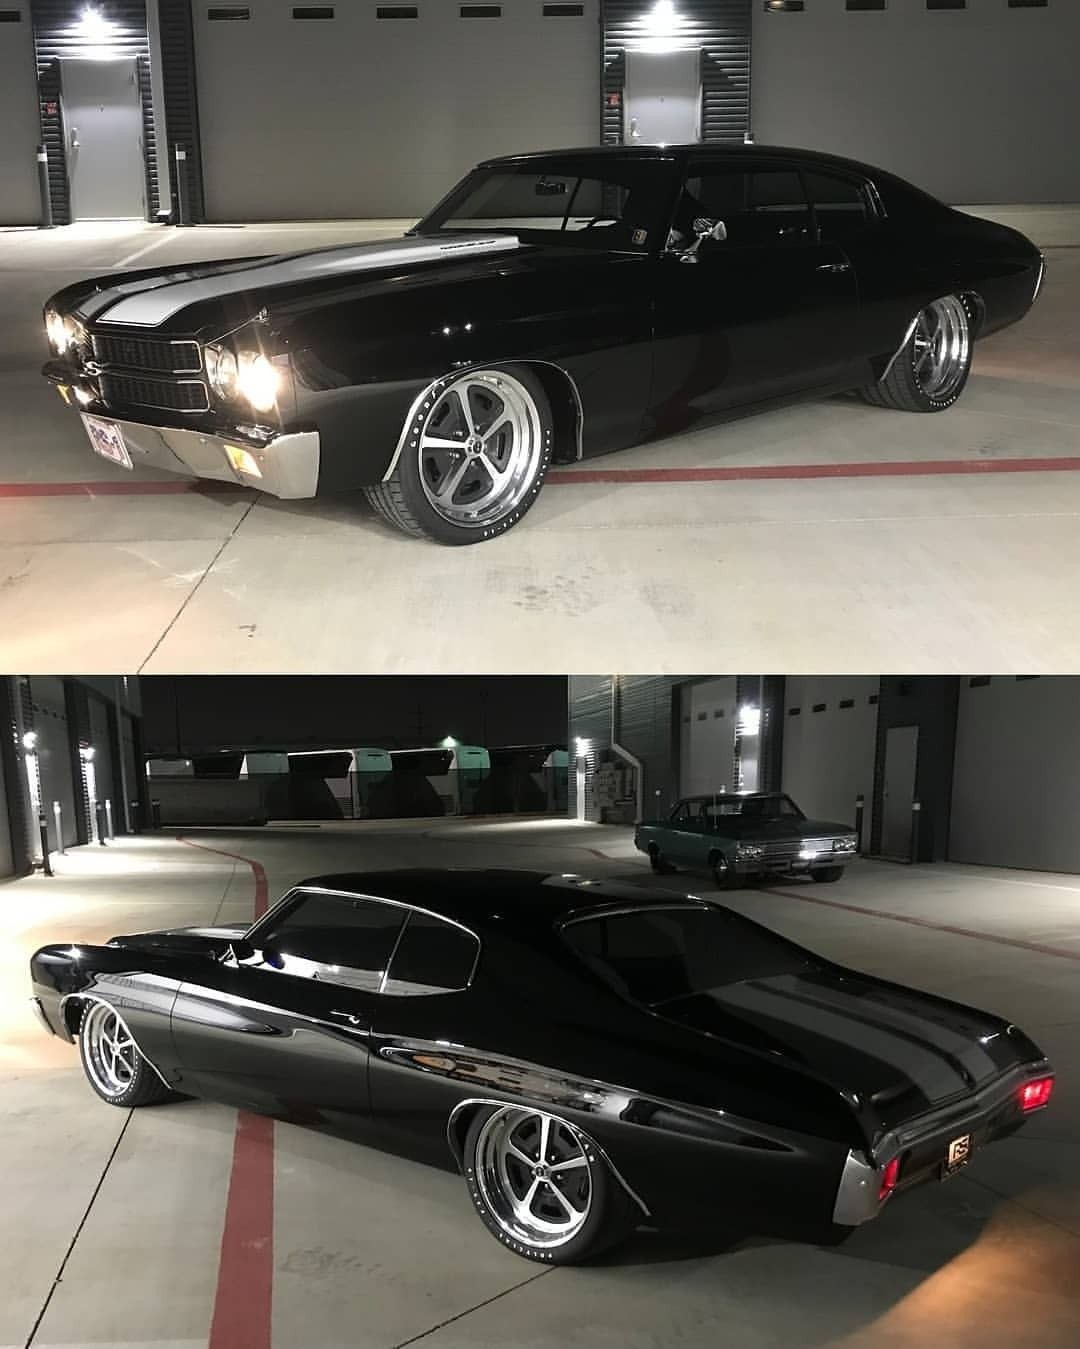 Pin by Shane Carder on '68 '72 Chevrolet Chevelle